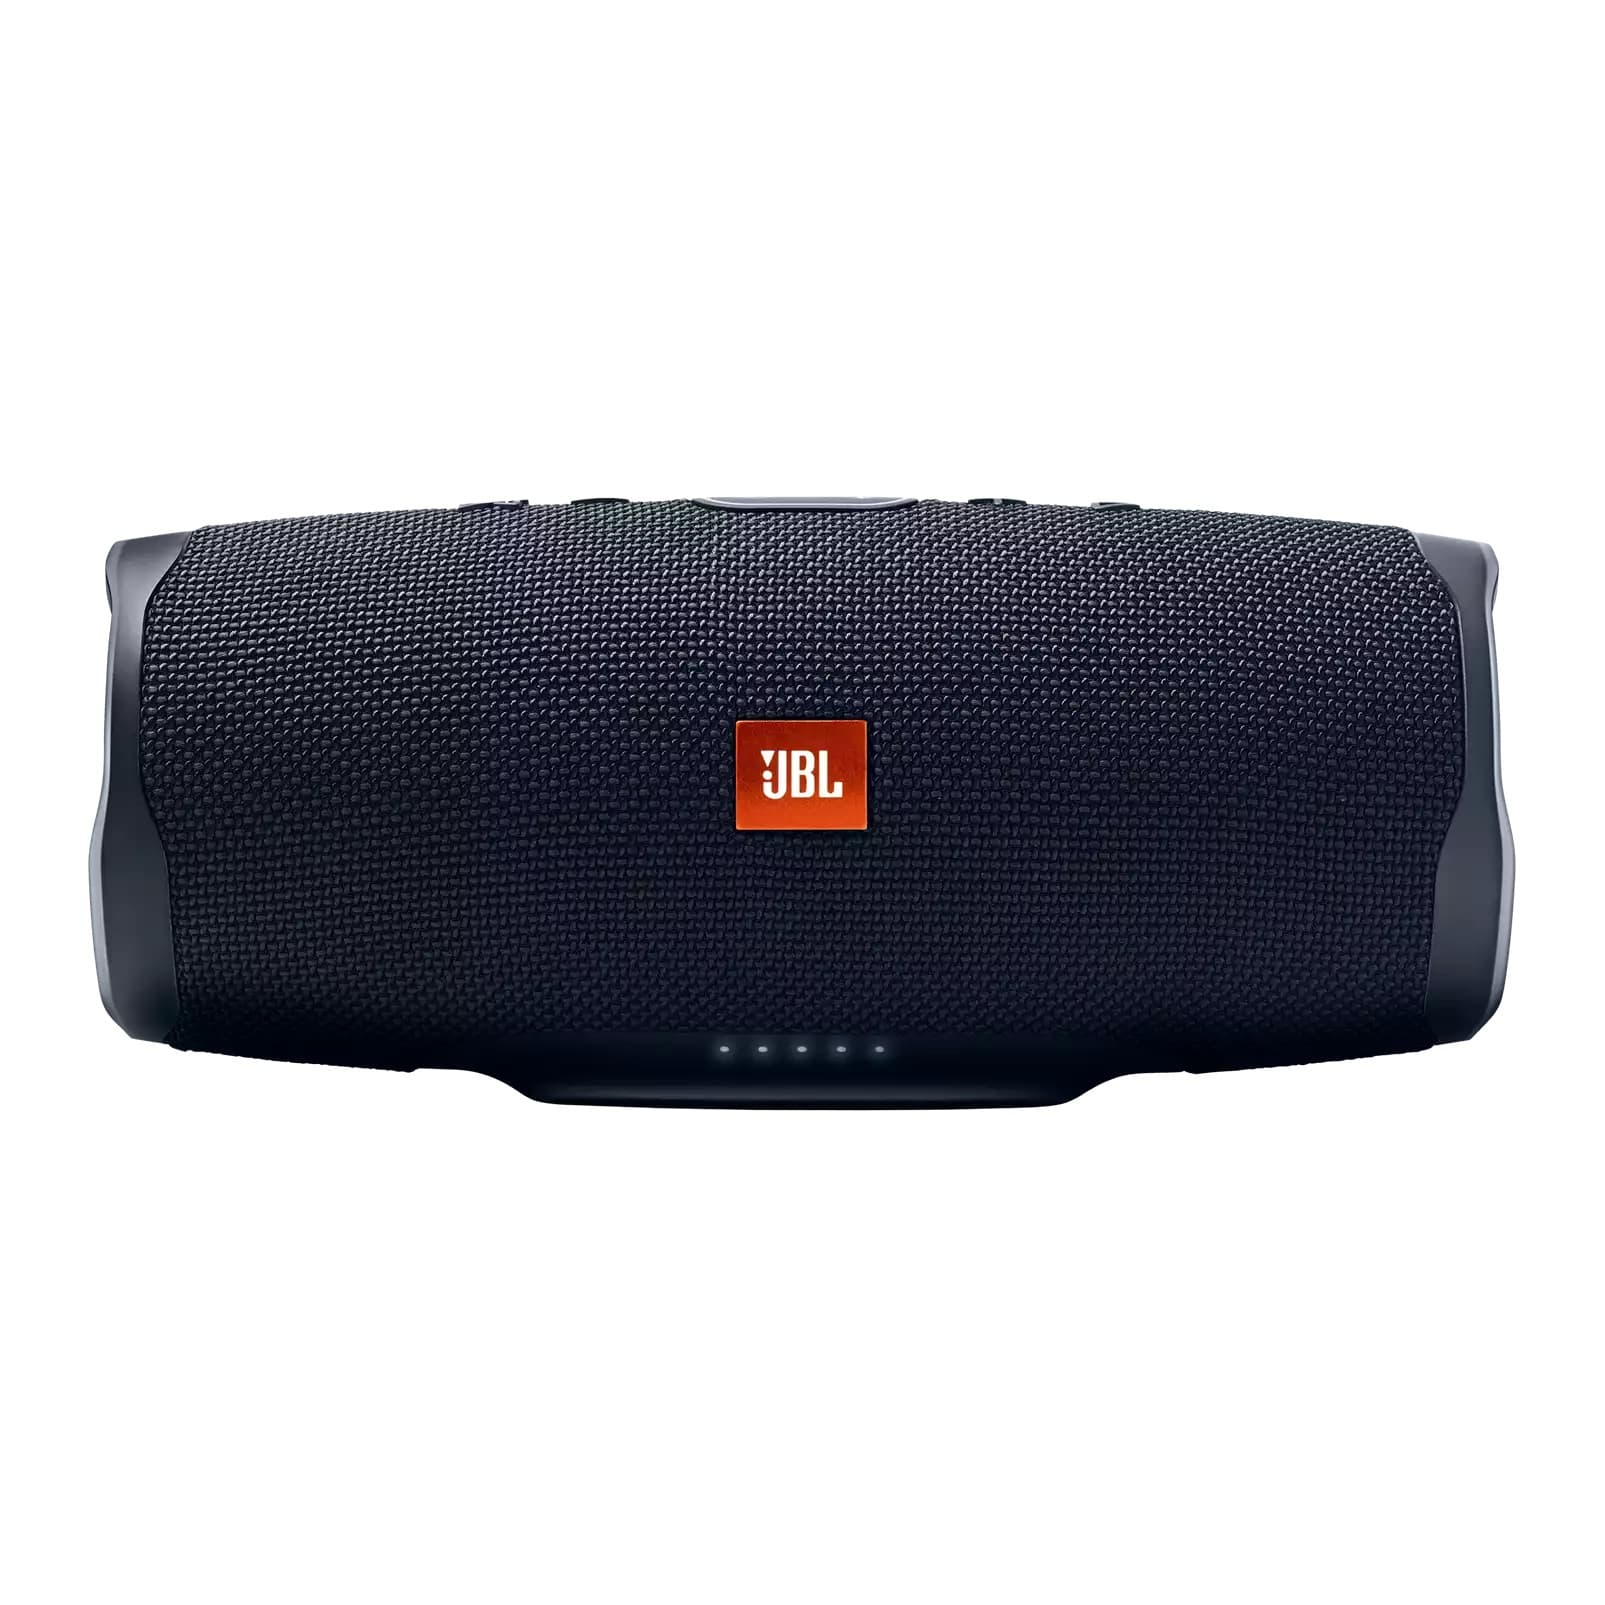 JBL Charge 4 kabelloser Bluetooth-Lautsprecher High-End-Stereo-Sound IPX7 für 133,90 Euro